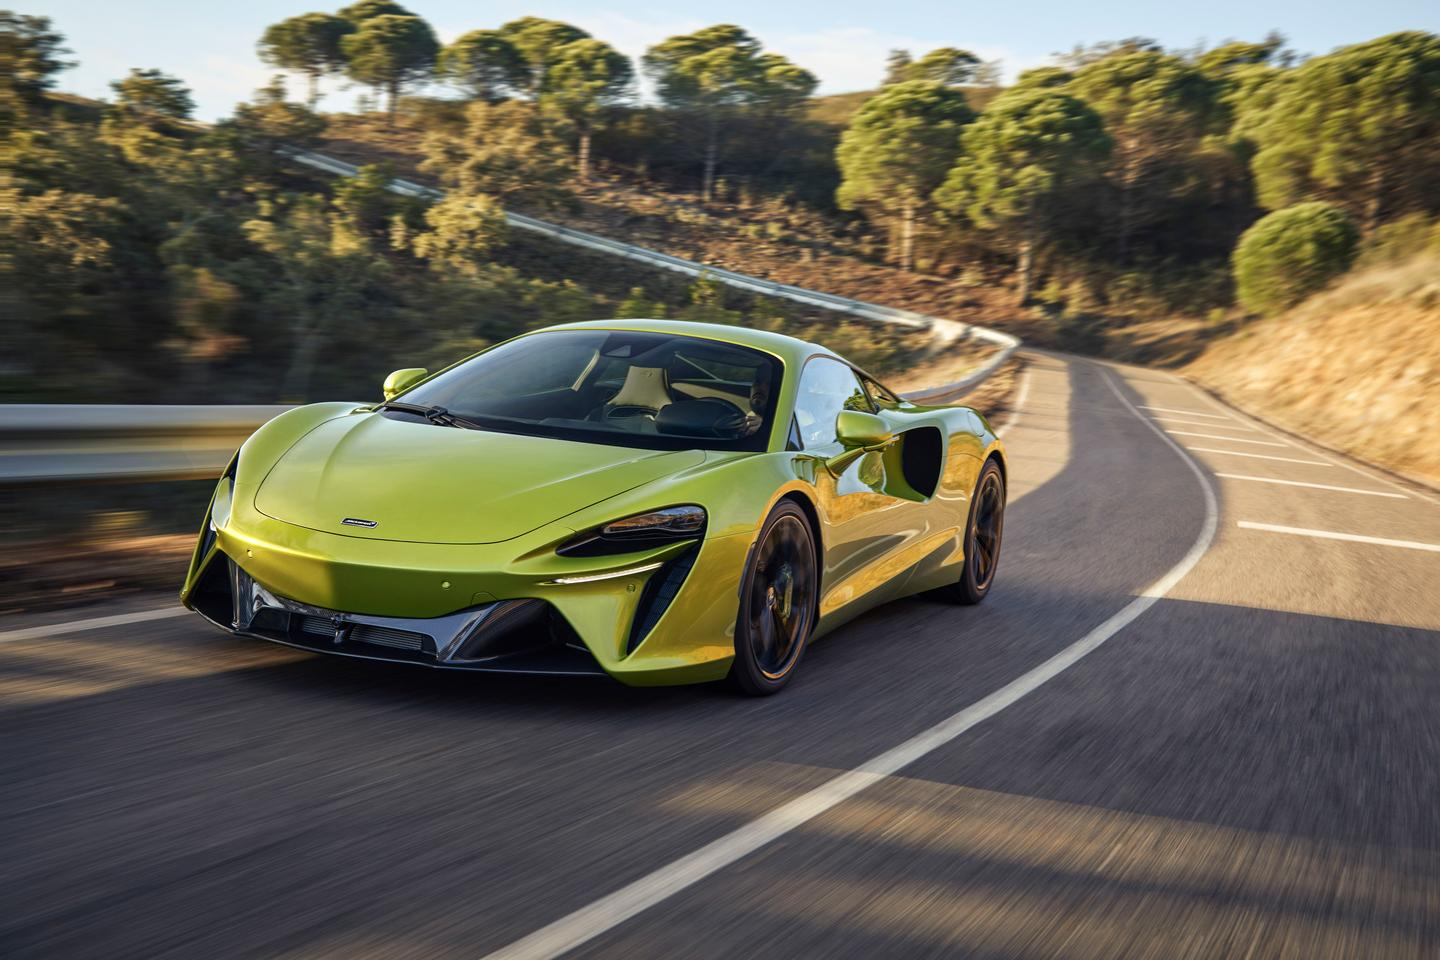 McLaren's new Artura is the first Hybrid the company has built since the extraordinary P1